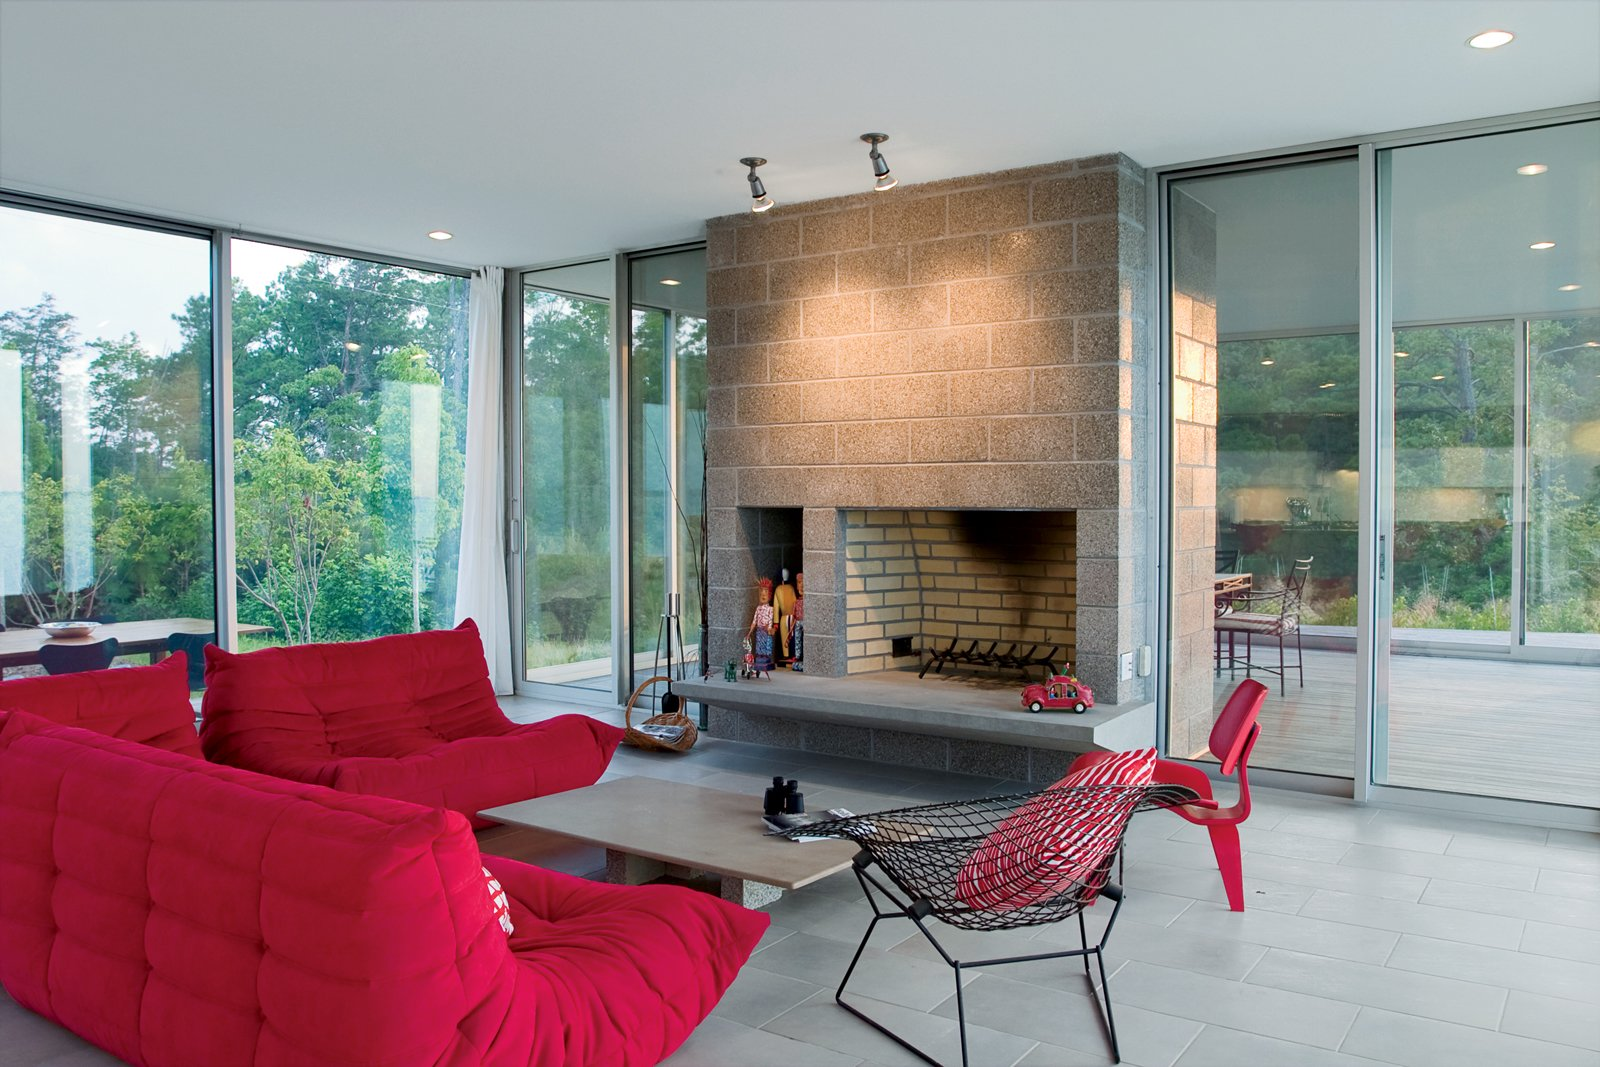 Living Room, Standard Layout Fireplace, Wood Burning Fireplace, Chair, Ceramic Tile Floor, Sofa, Ceiling Lighting, and Coffee Tables Magenta Togo sofas by Ligne Roset, a red Eames molded plywood chair, and wire Bertoia Diamond chair provide seating around the hearth.  Photo 1 of 2 in Row House